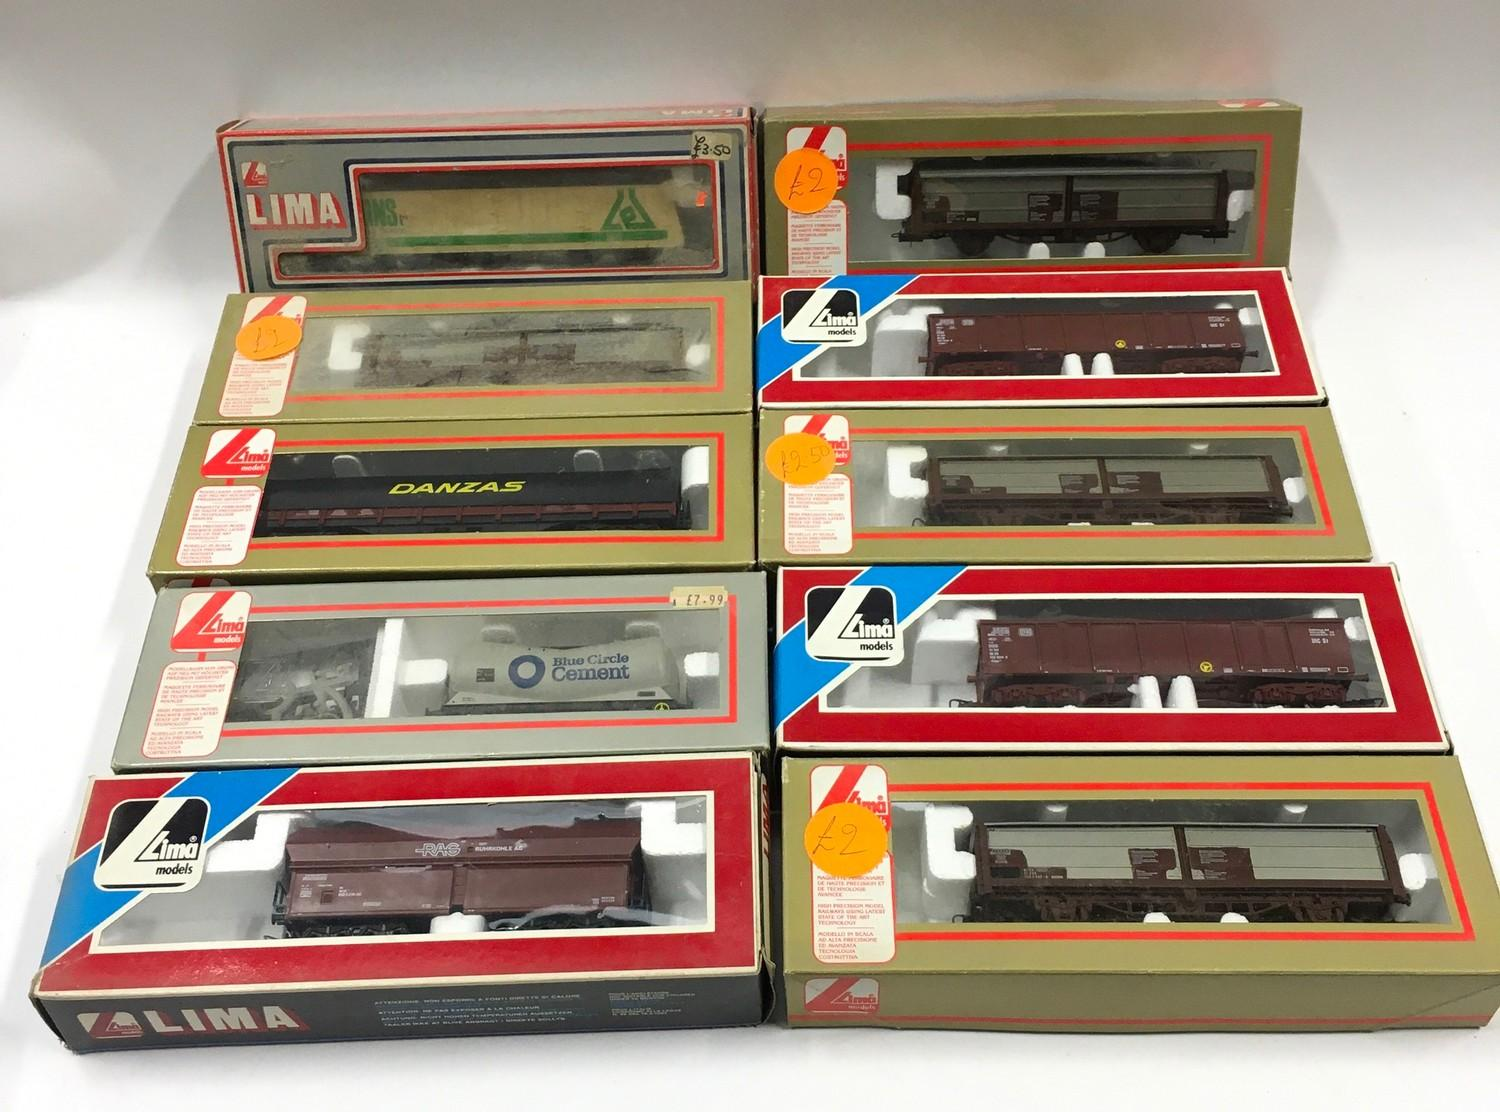 10 x boxed Lima rolling stock. Generally Good to Excellent condition.